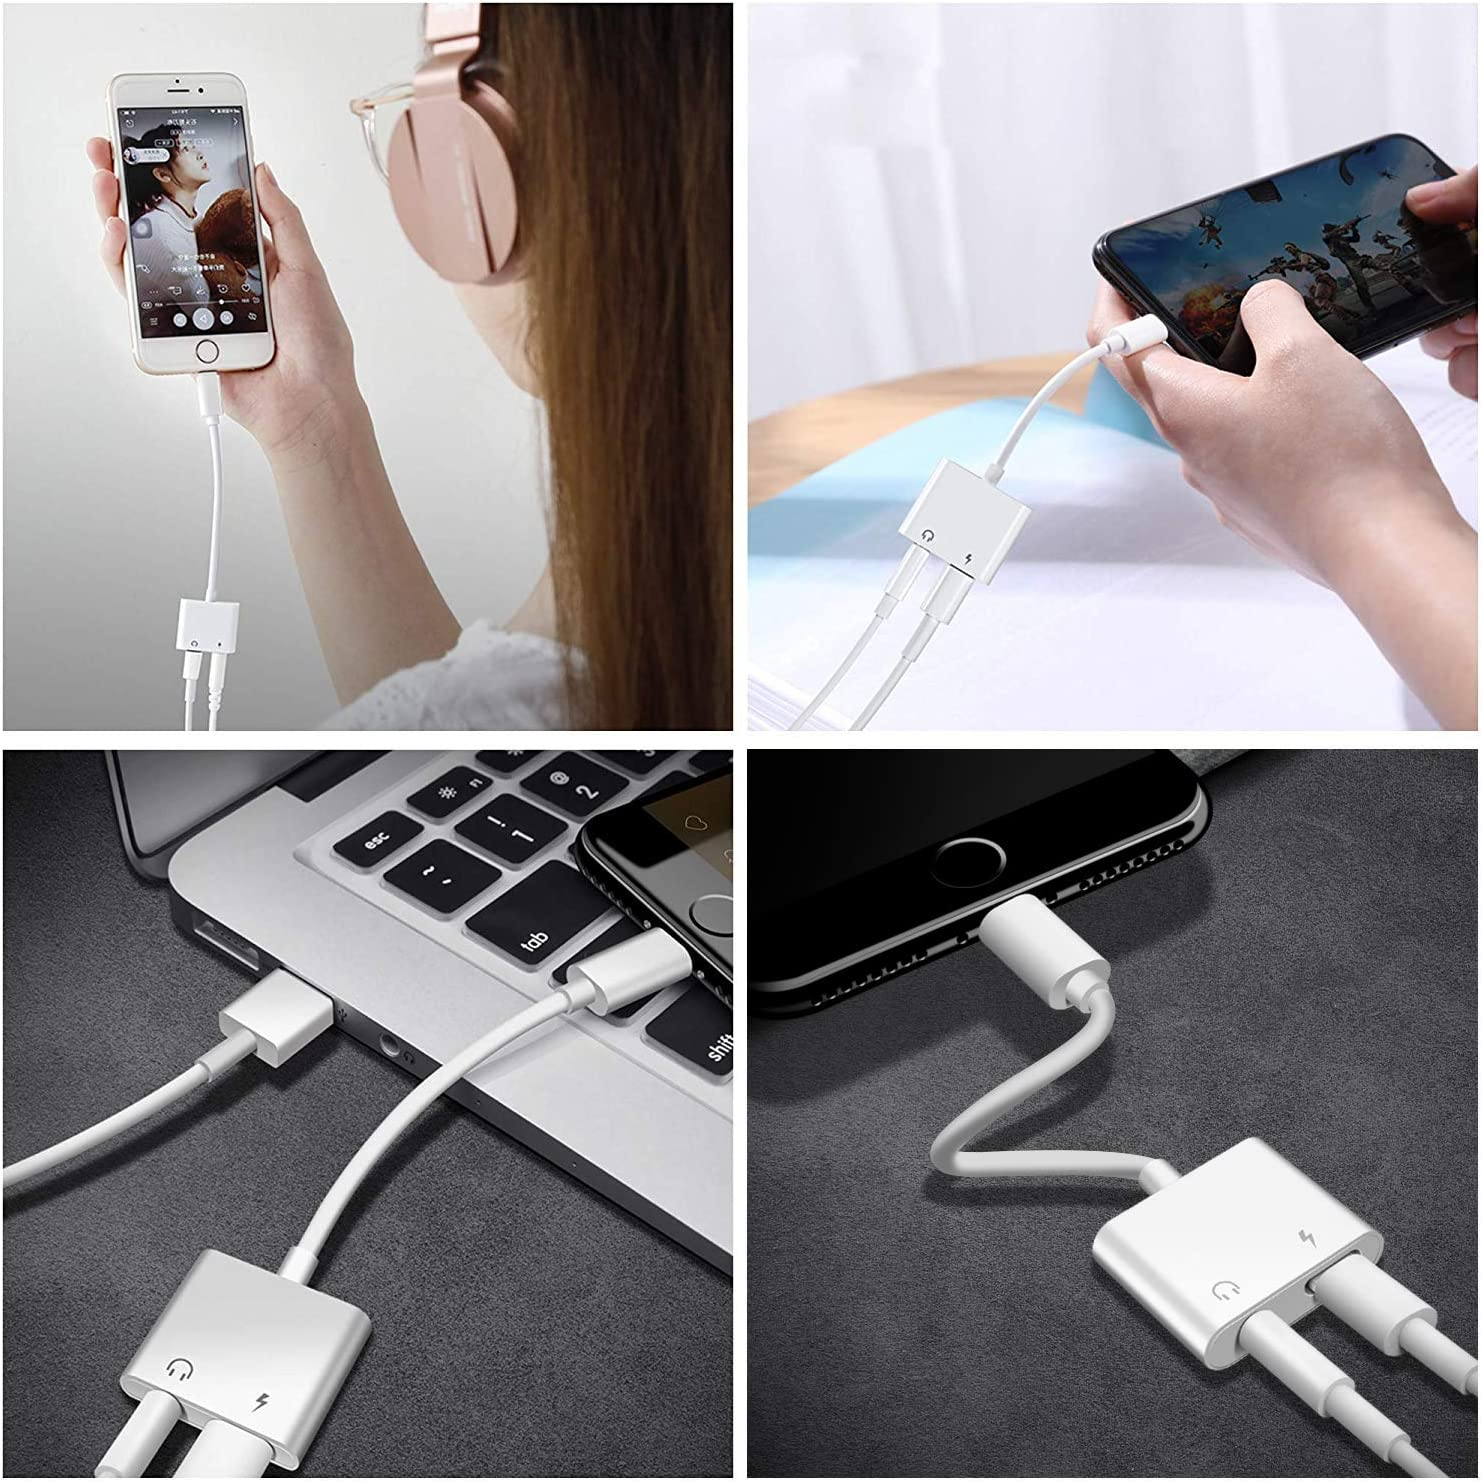 Headphone Dongle Adaptor LEADTEAM 2 in 1 Earphone Splitter Connector for Phone 11//11pro//11 Pro//XS Max//XR//8//7//Plus/ with 3.5mm Dongle Earphone Music /& Charge Compatible